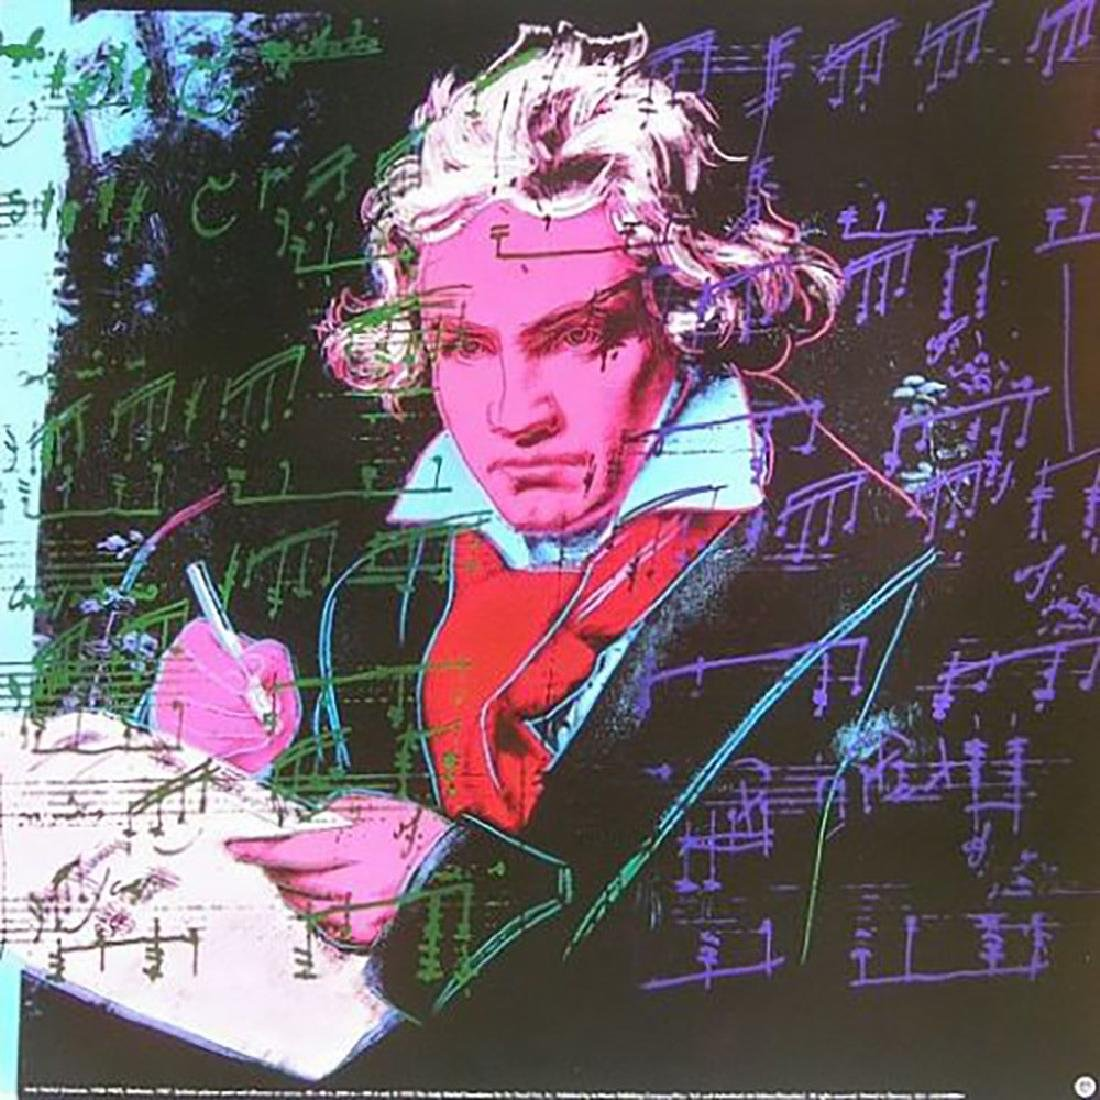 Andy Warhol-Beethoven--1992 offset lithograph & serigr